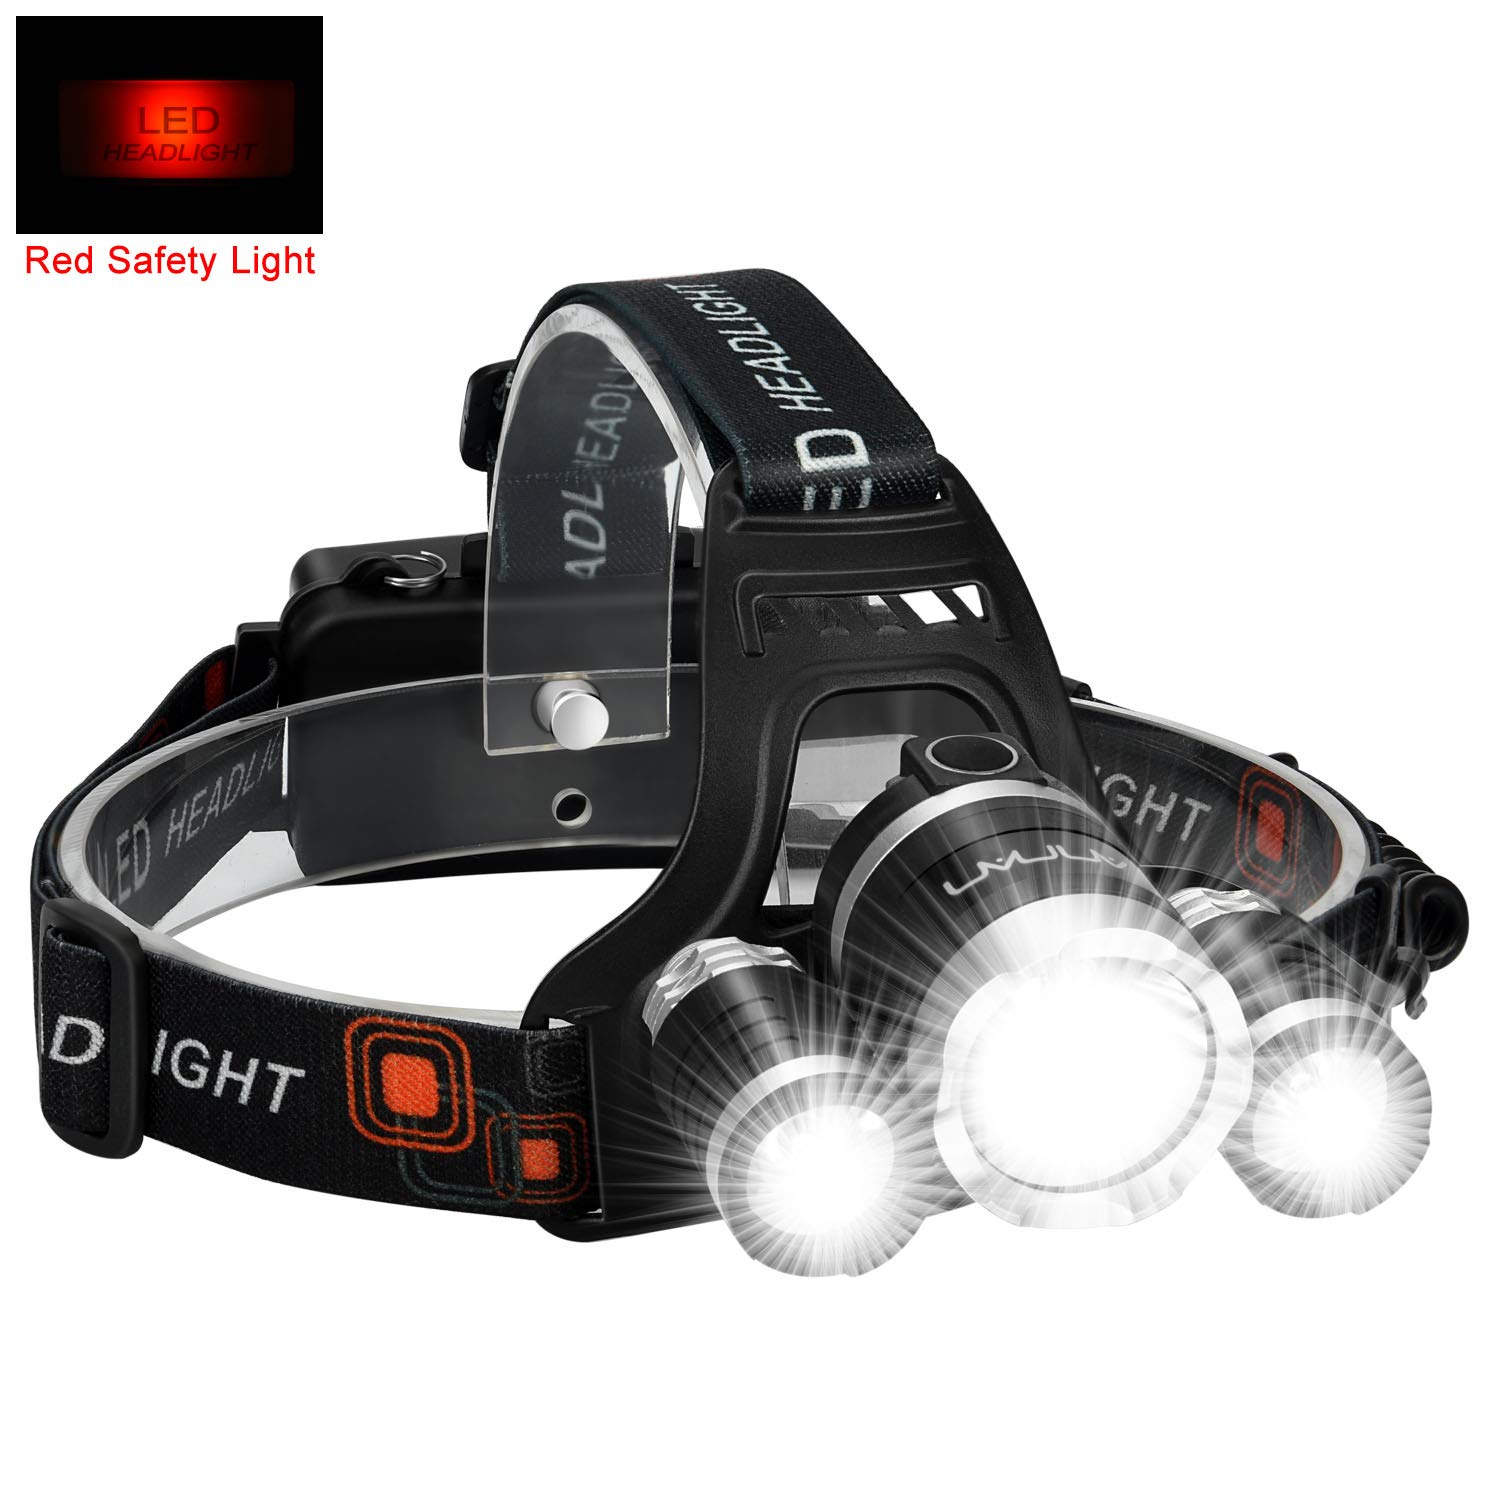 LED Headlamp Flashlight Kit, ANNAN 8000-Lumen Extreme Bright Headlight with Red Safety Light, 4 Modes, Waterproof, Portable Light for Camping, Biking, 2 Rechargeable Lithium Batteries Included by ANNAN